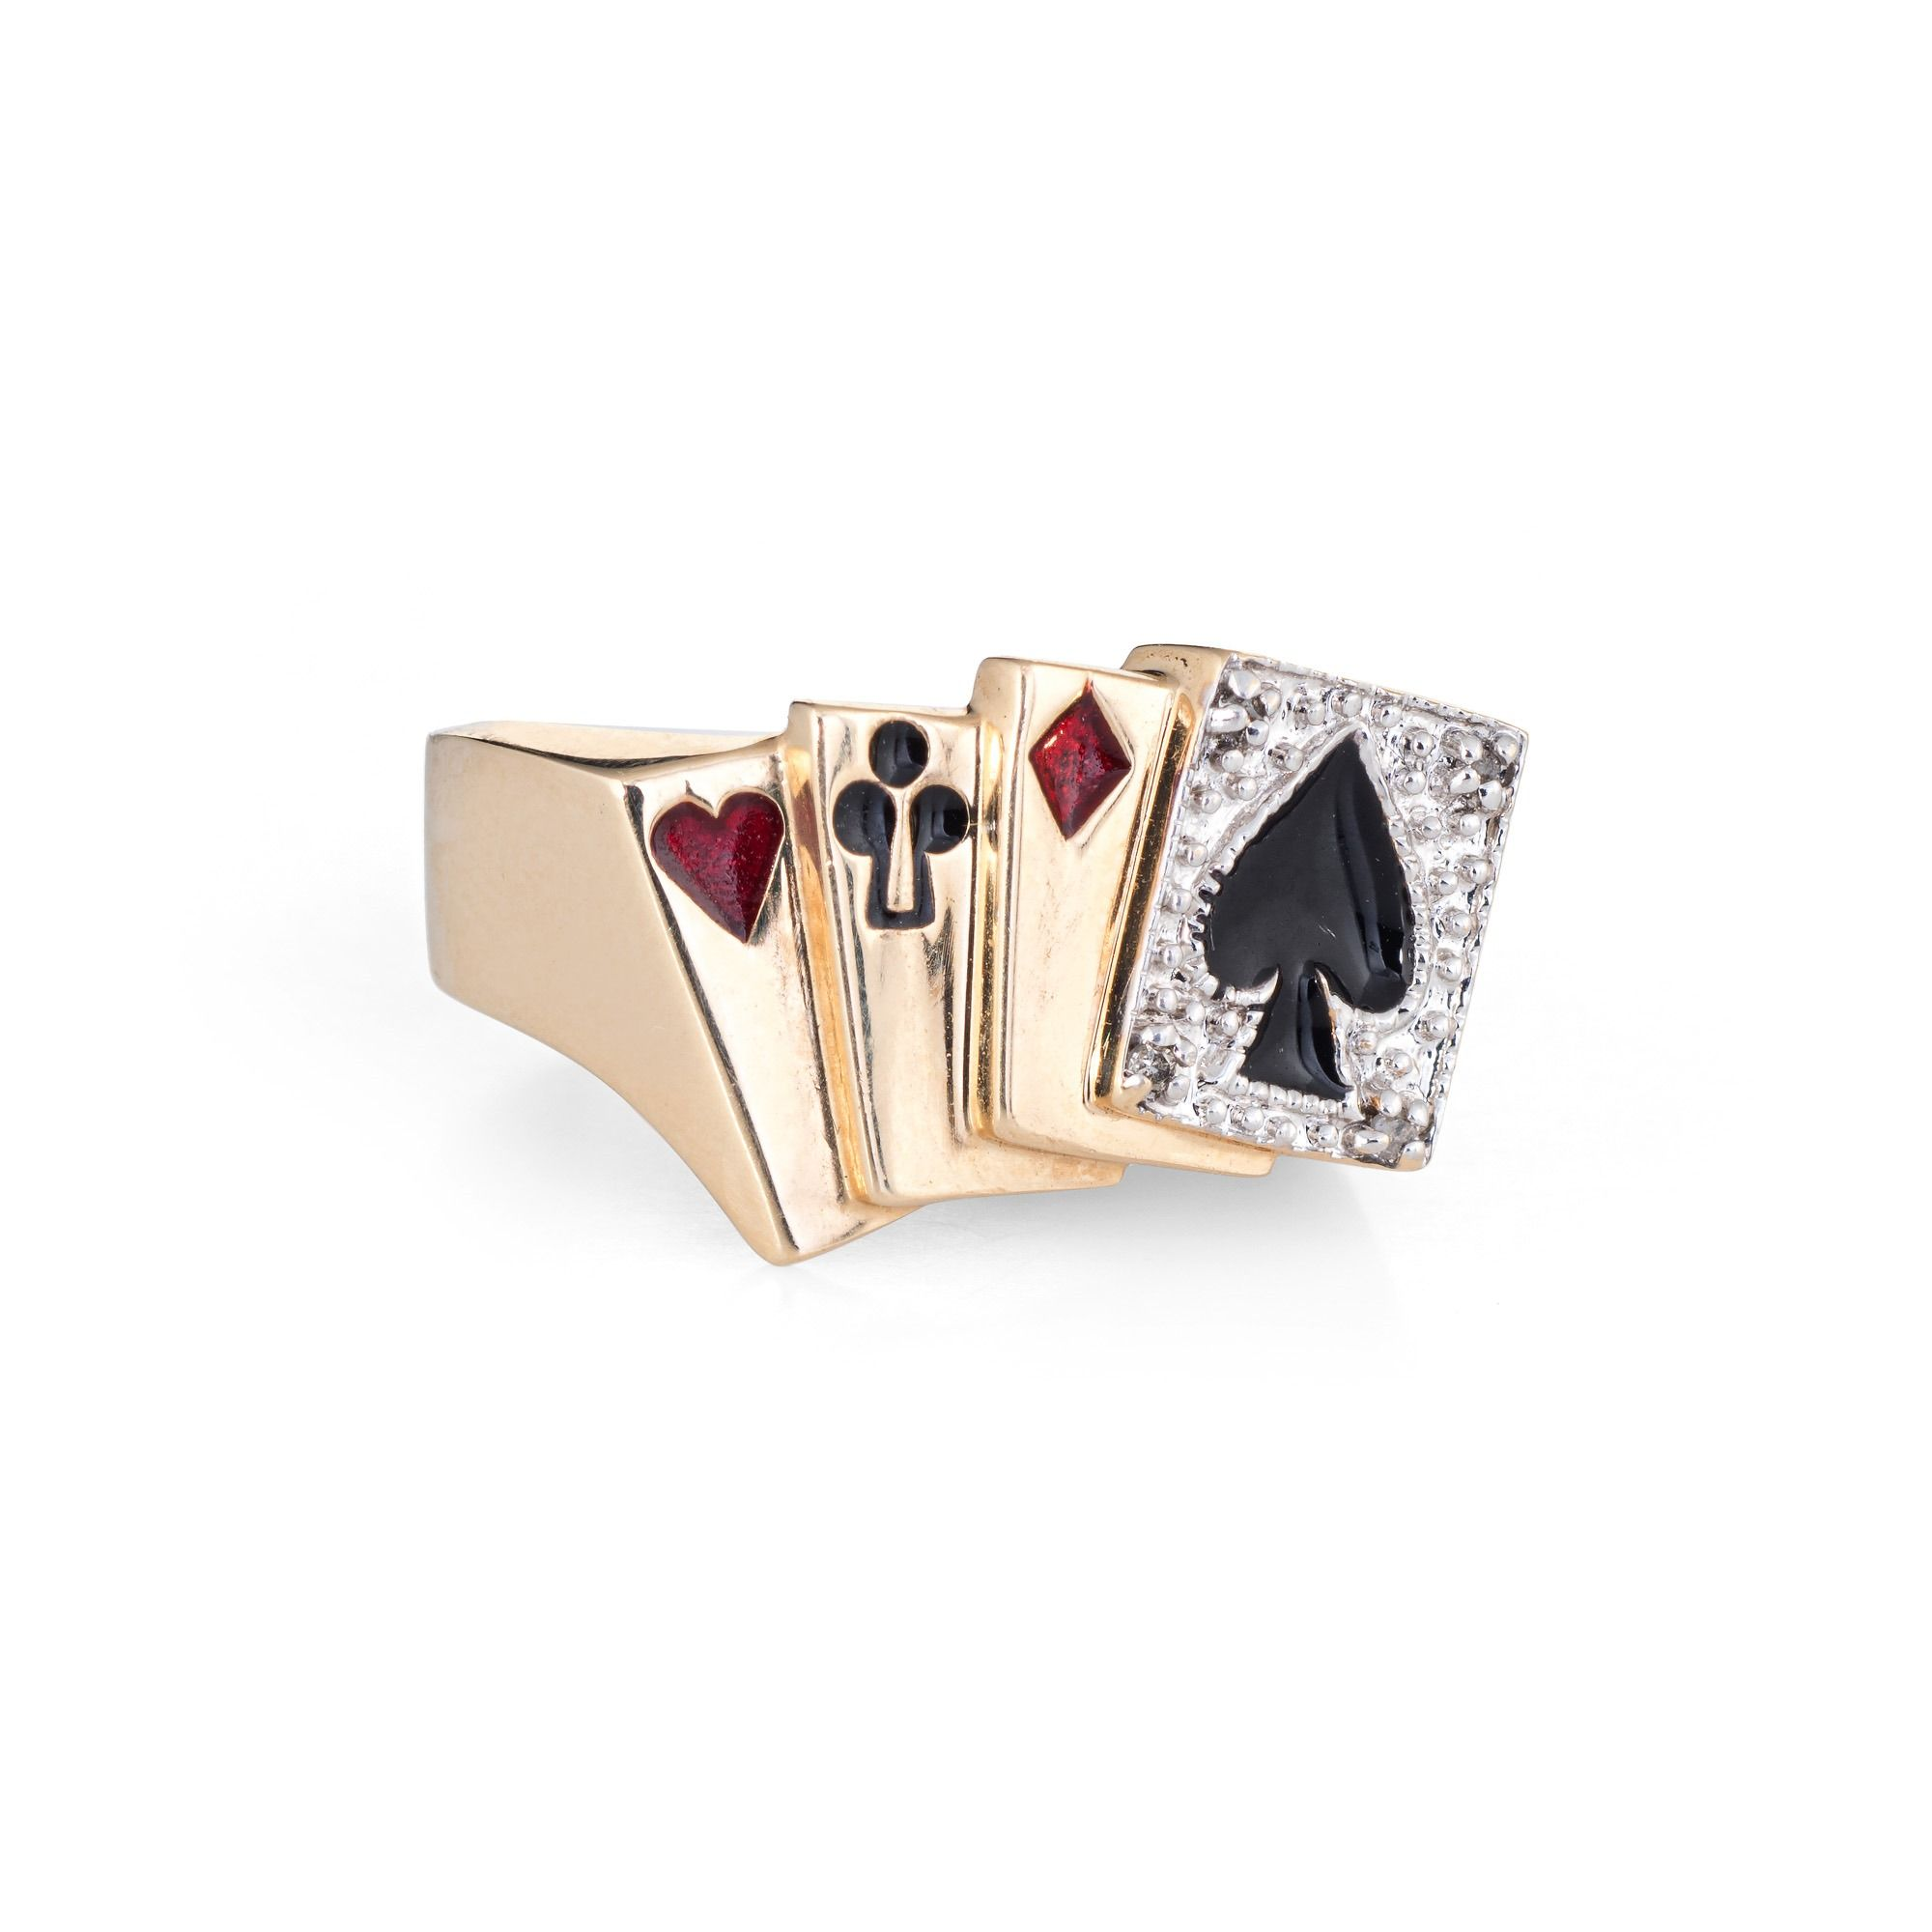 Estate Deck Of Cards Ring 10 Karat Gold Playing Cards Poker Gambling Jewelry 6 75 Gold Playing Cards Deck Of Cards Karat